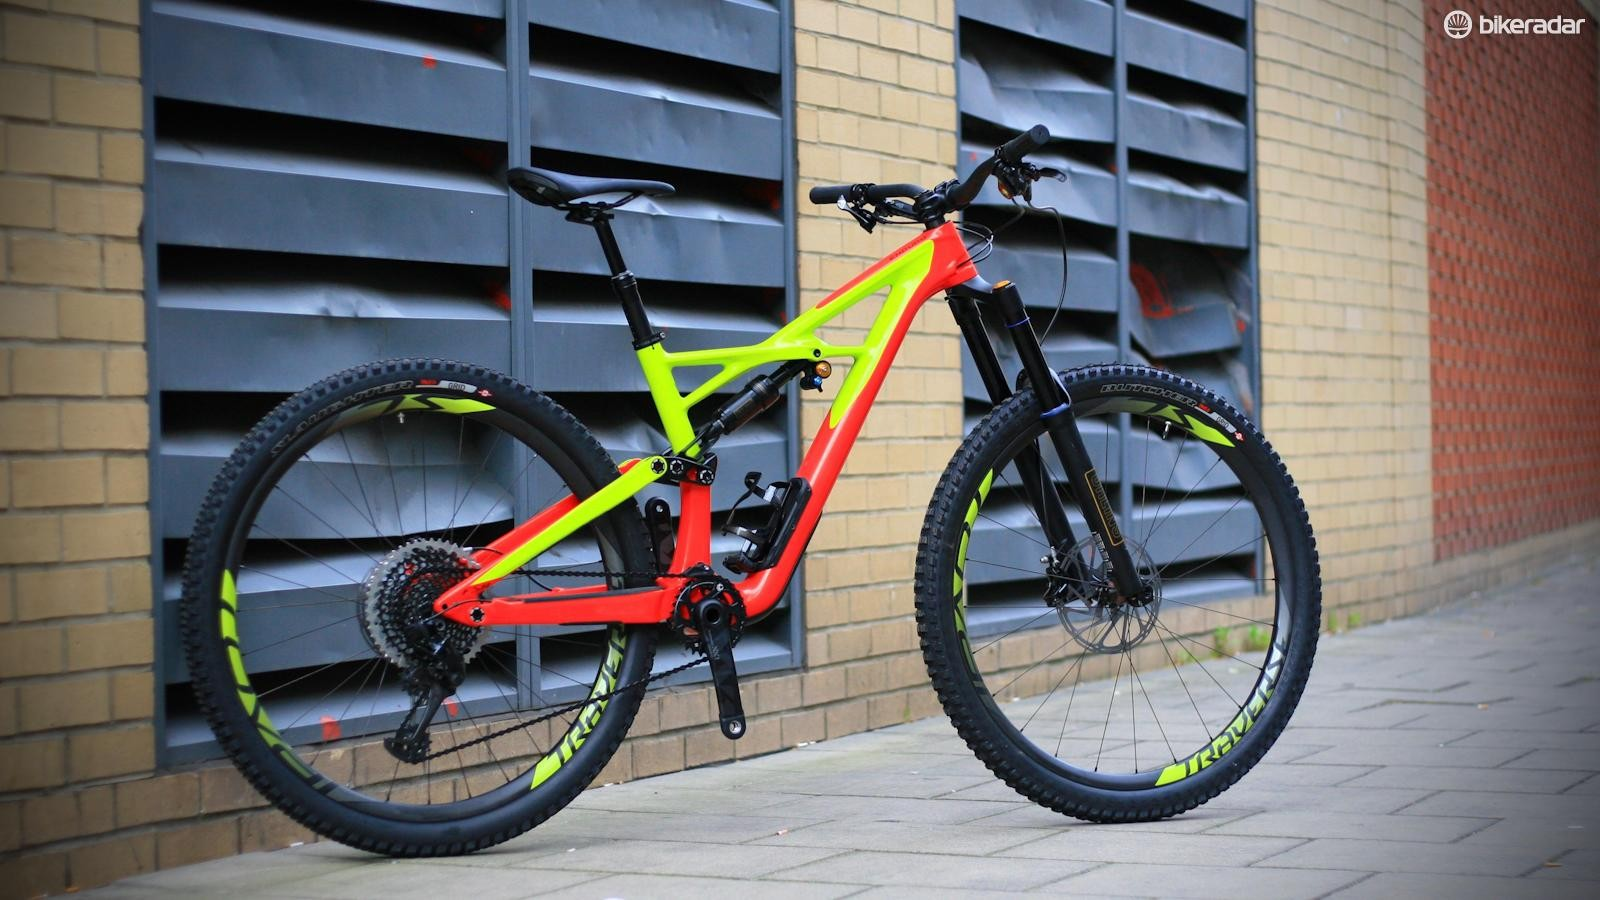 Specialized's special Enduro S-Works